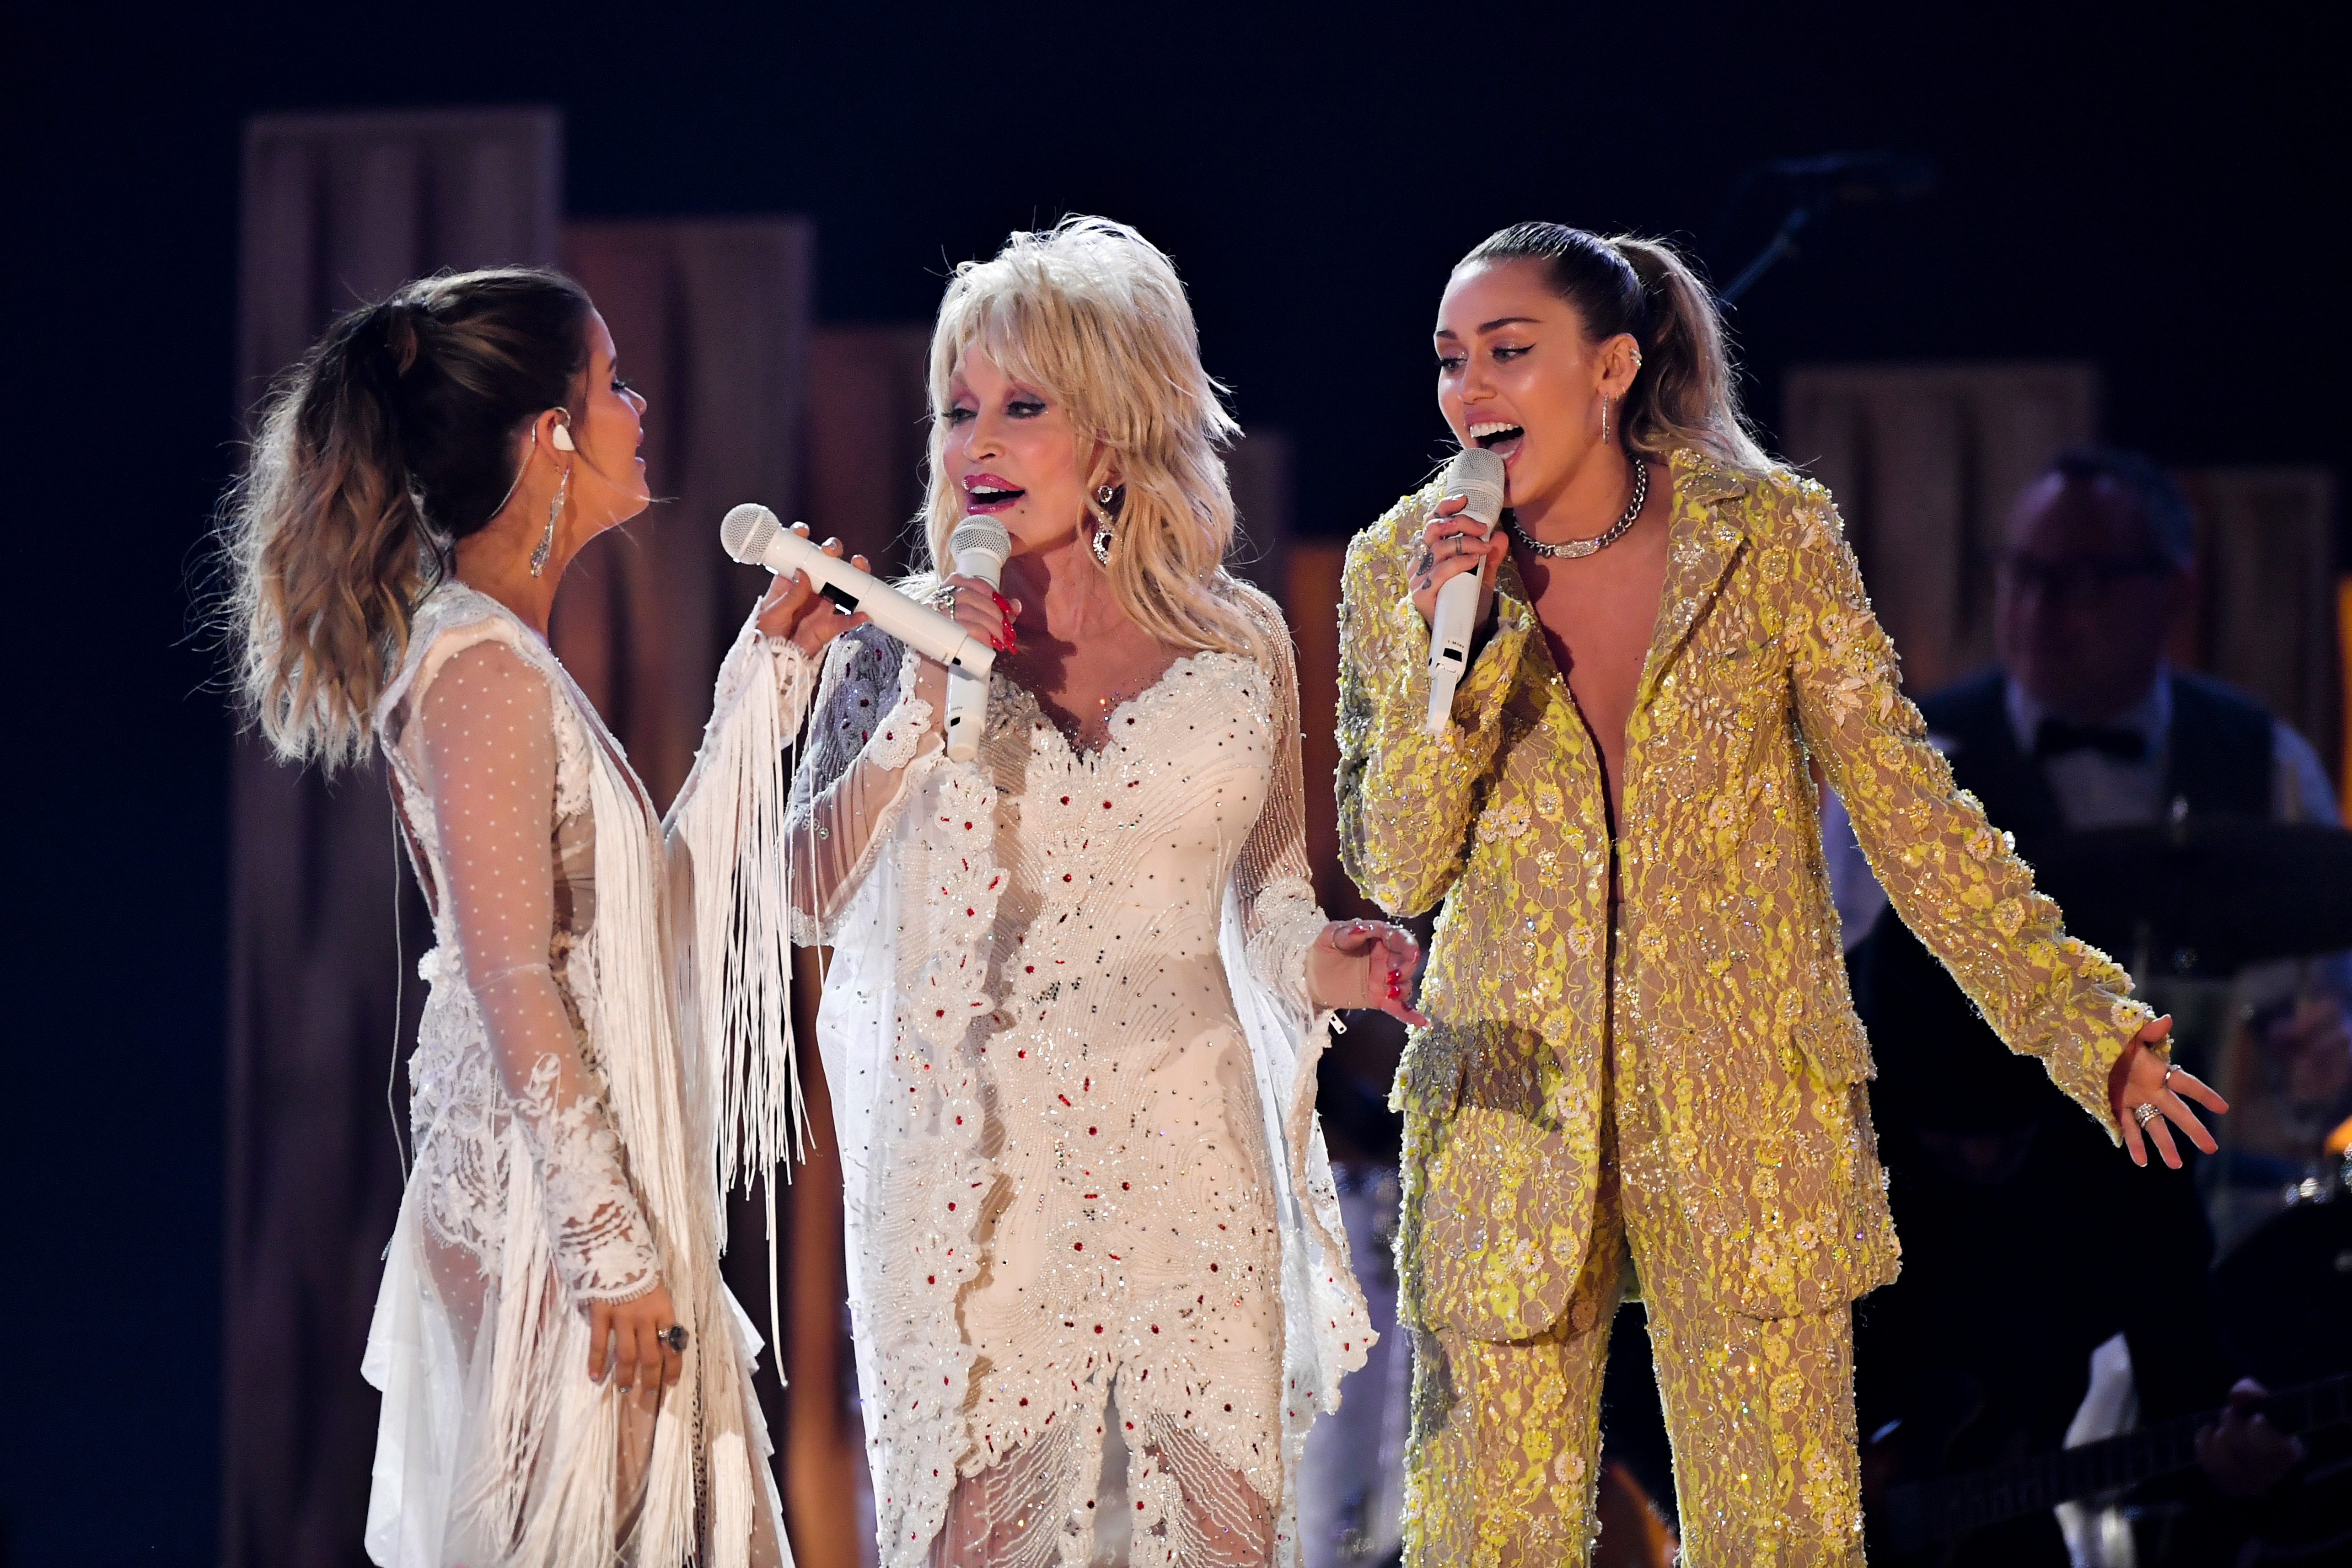 Grammys 2019 Dolly Parton Covers Neil Young With Miley Cyrus Rolling Stone